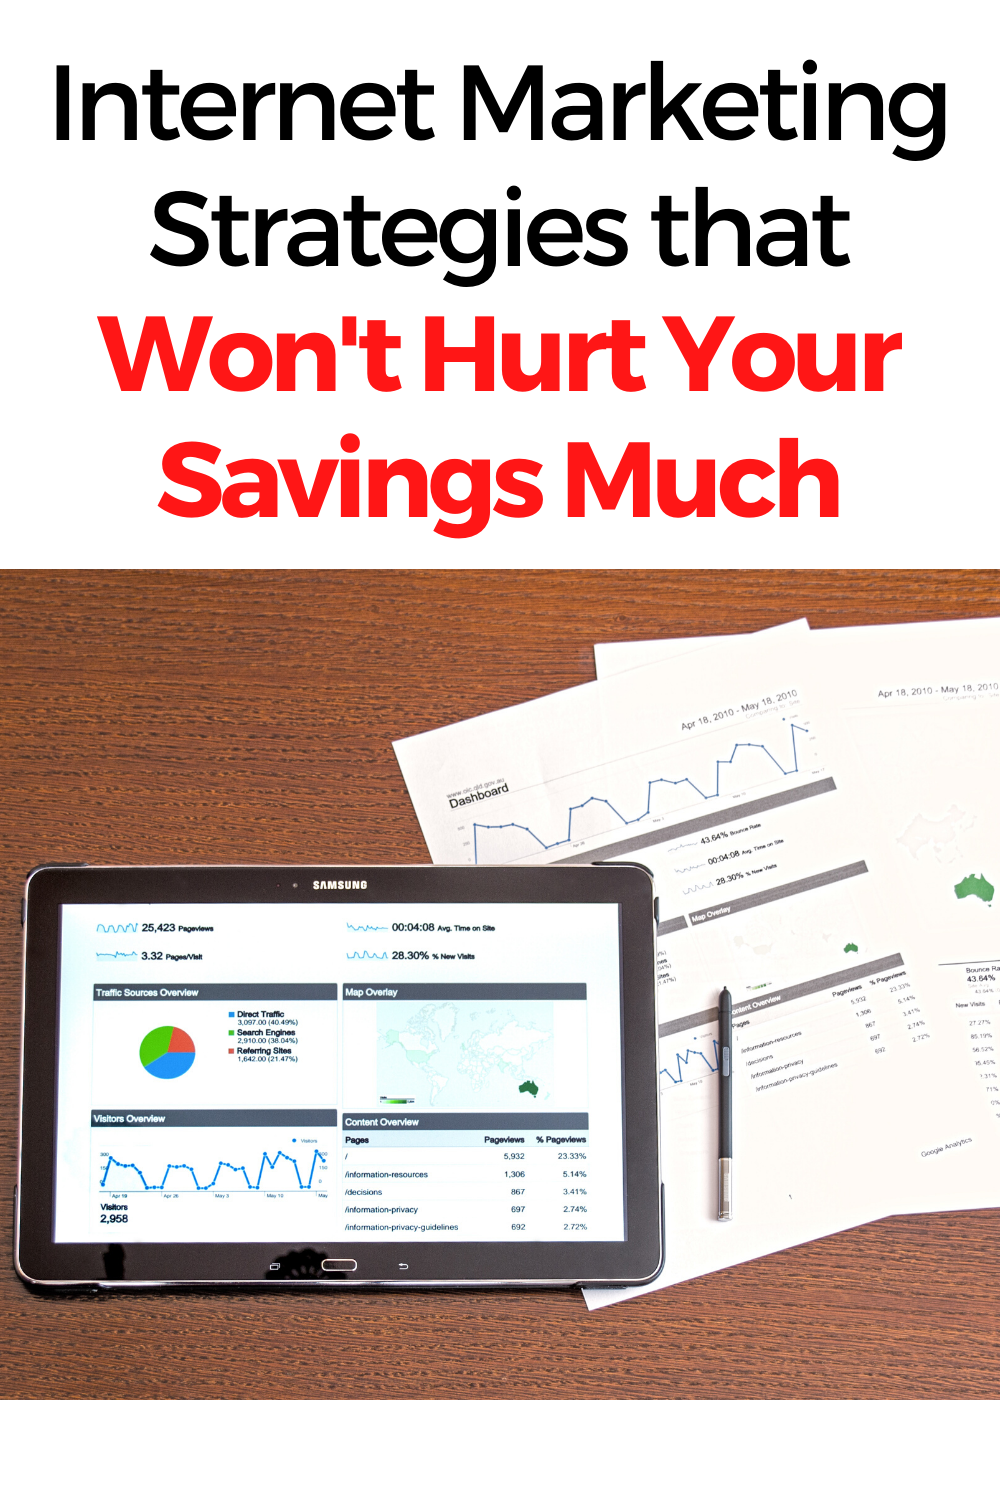 Internet Marketing Strategies that Won't Hurt Your Savings Much